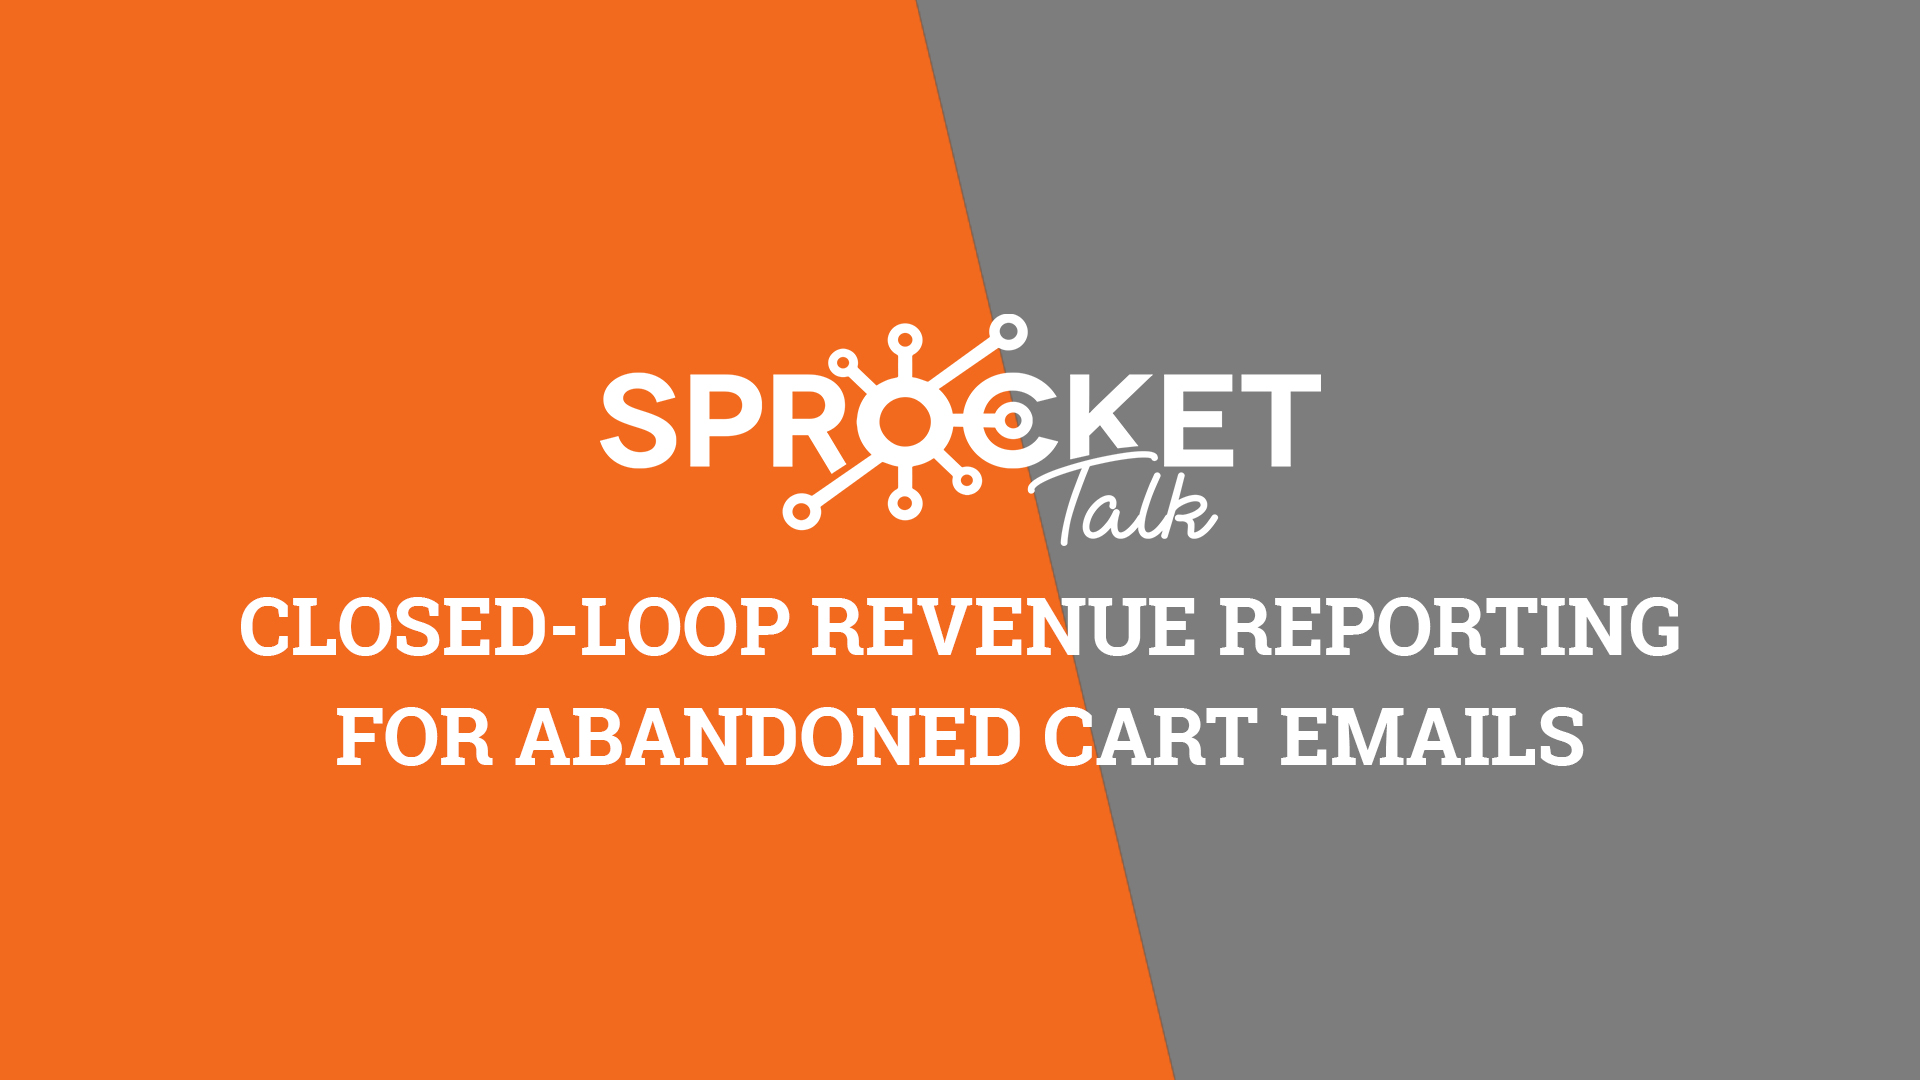 Closed-Loop Revenue Reporting for Abandoned Cart Emails